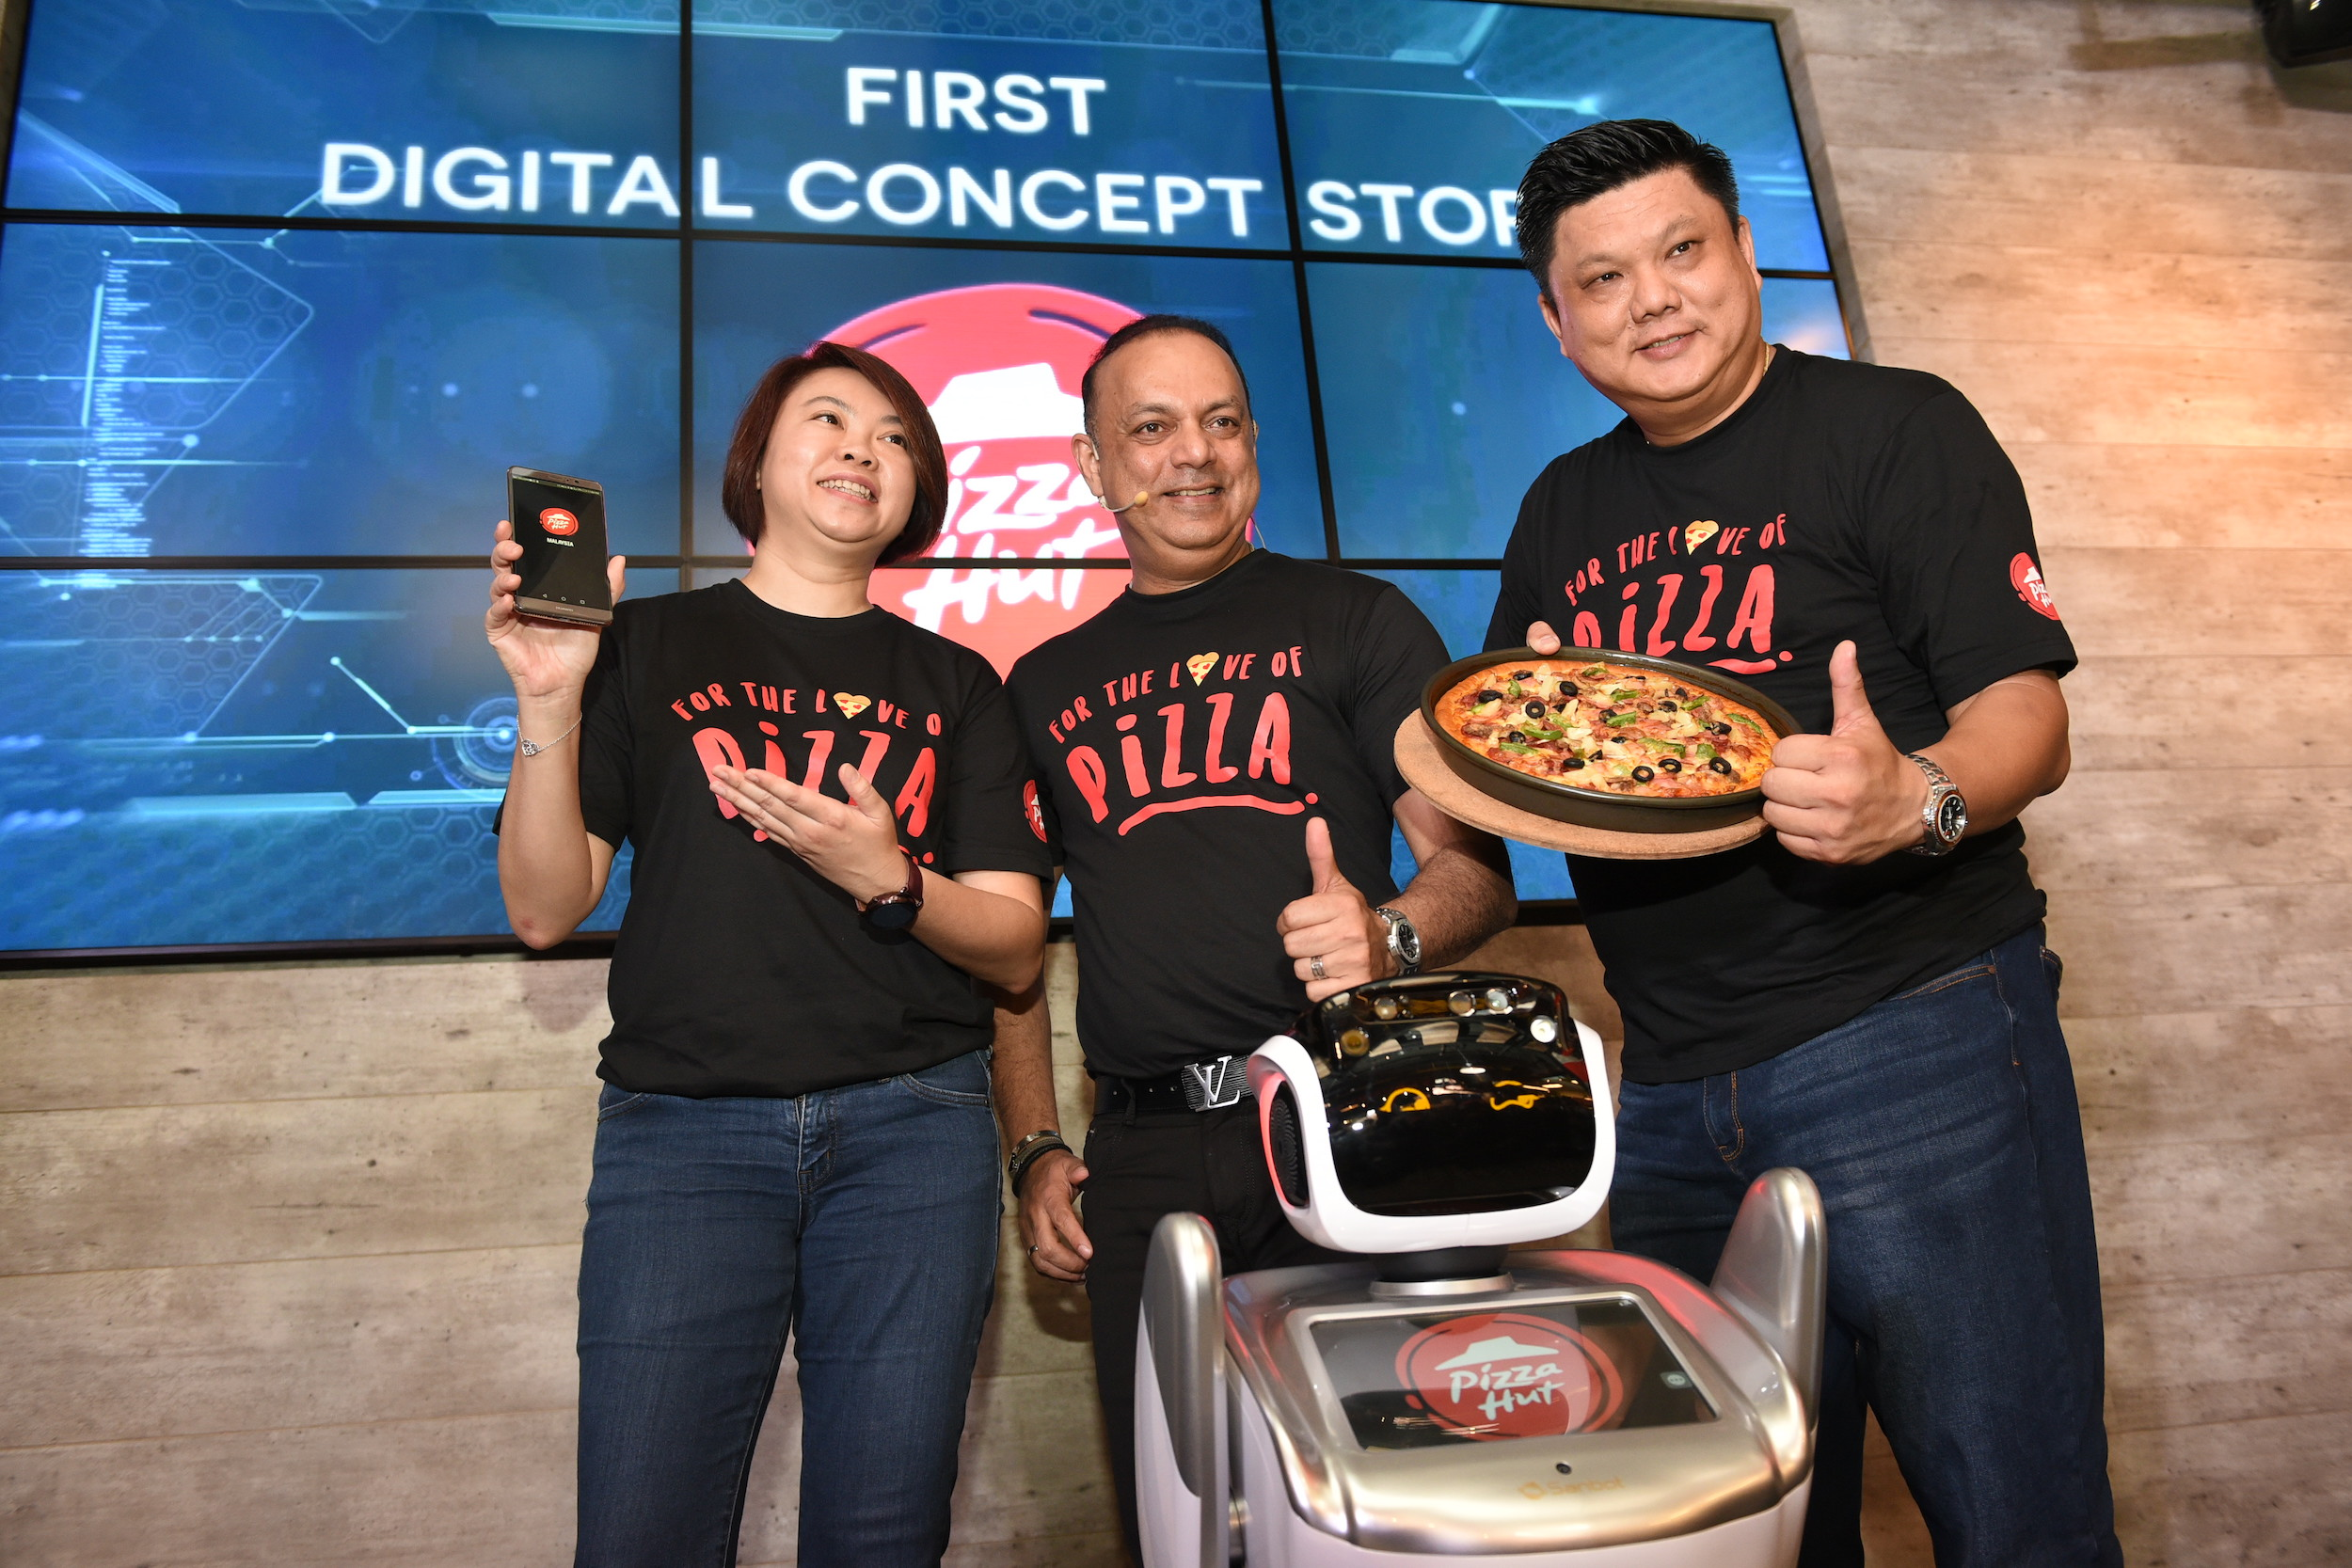 (L-R) Merrill Pereyra, CEO of QSR Brands (M) Holdings Bhd, Jean Ler, Chief Marketing Officer of Pizza Hut Malaysia and Eric Leong, Head of Pizza Hut Malaysia officiating the launch of Pizza Hut's first digital concept store and mobile app.